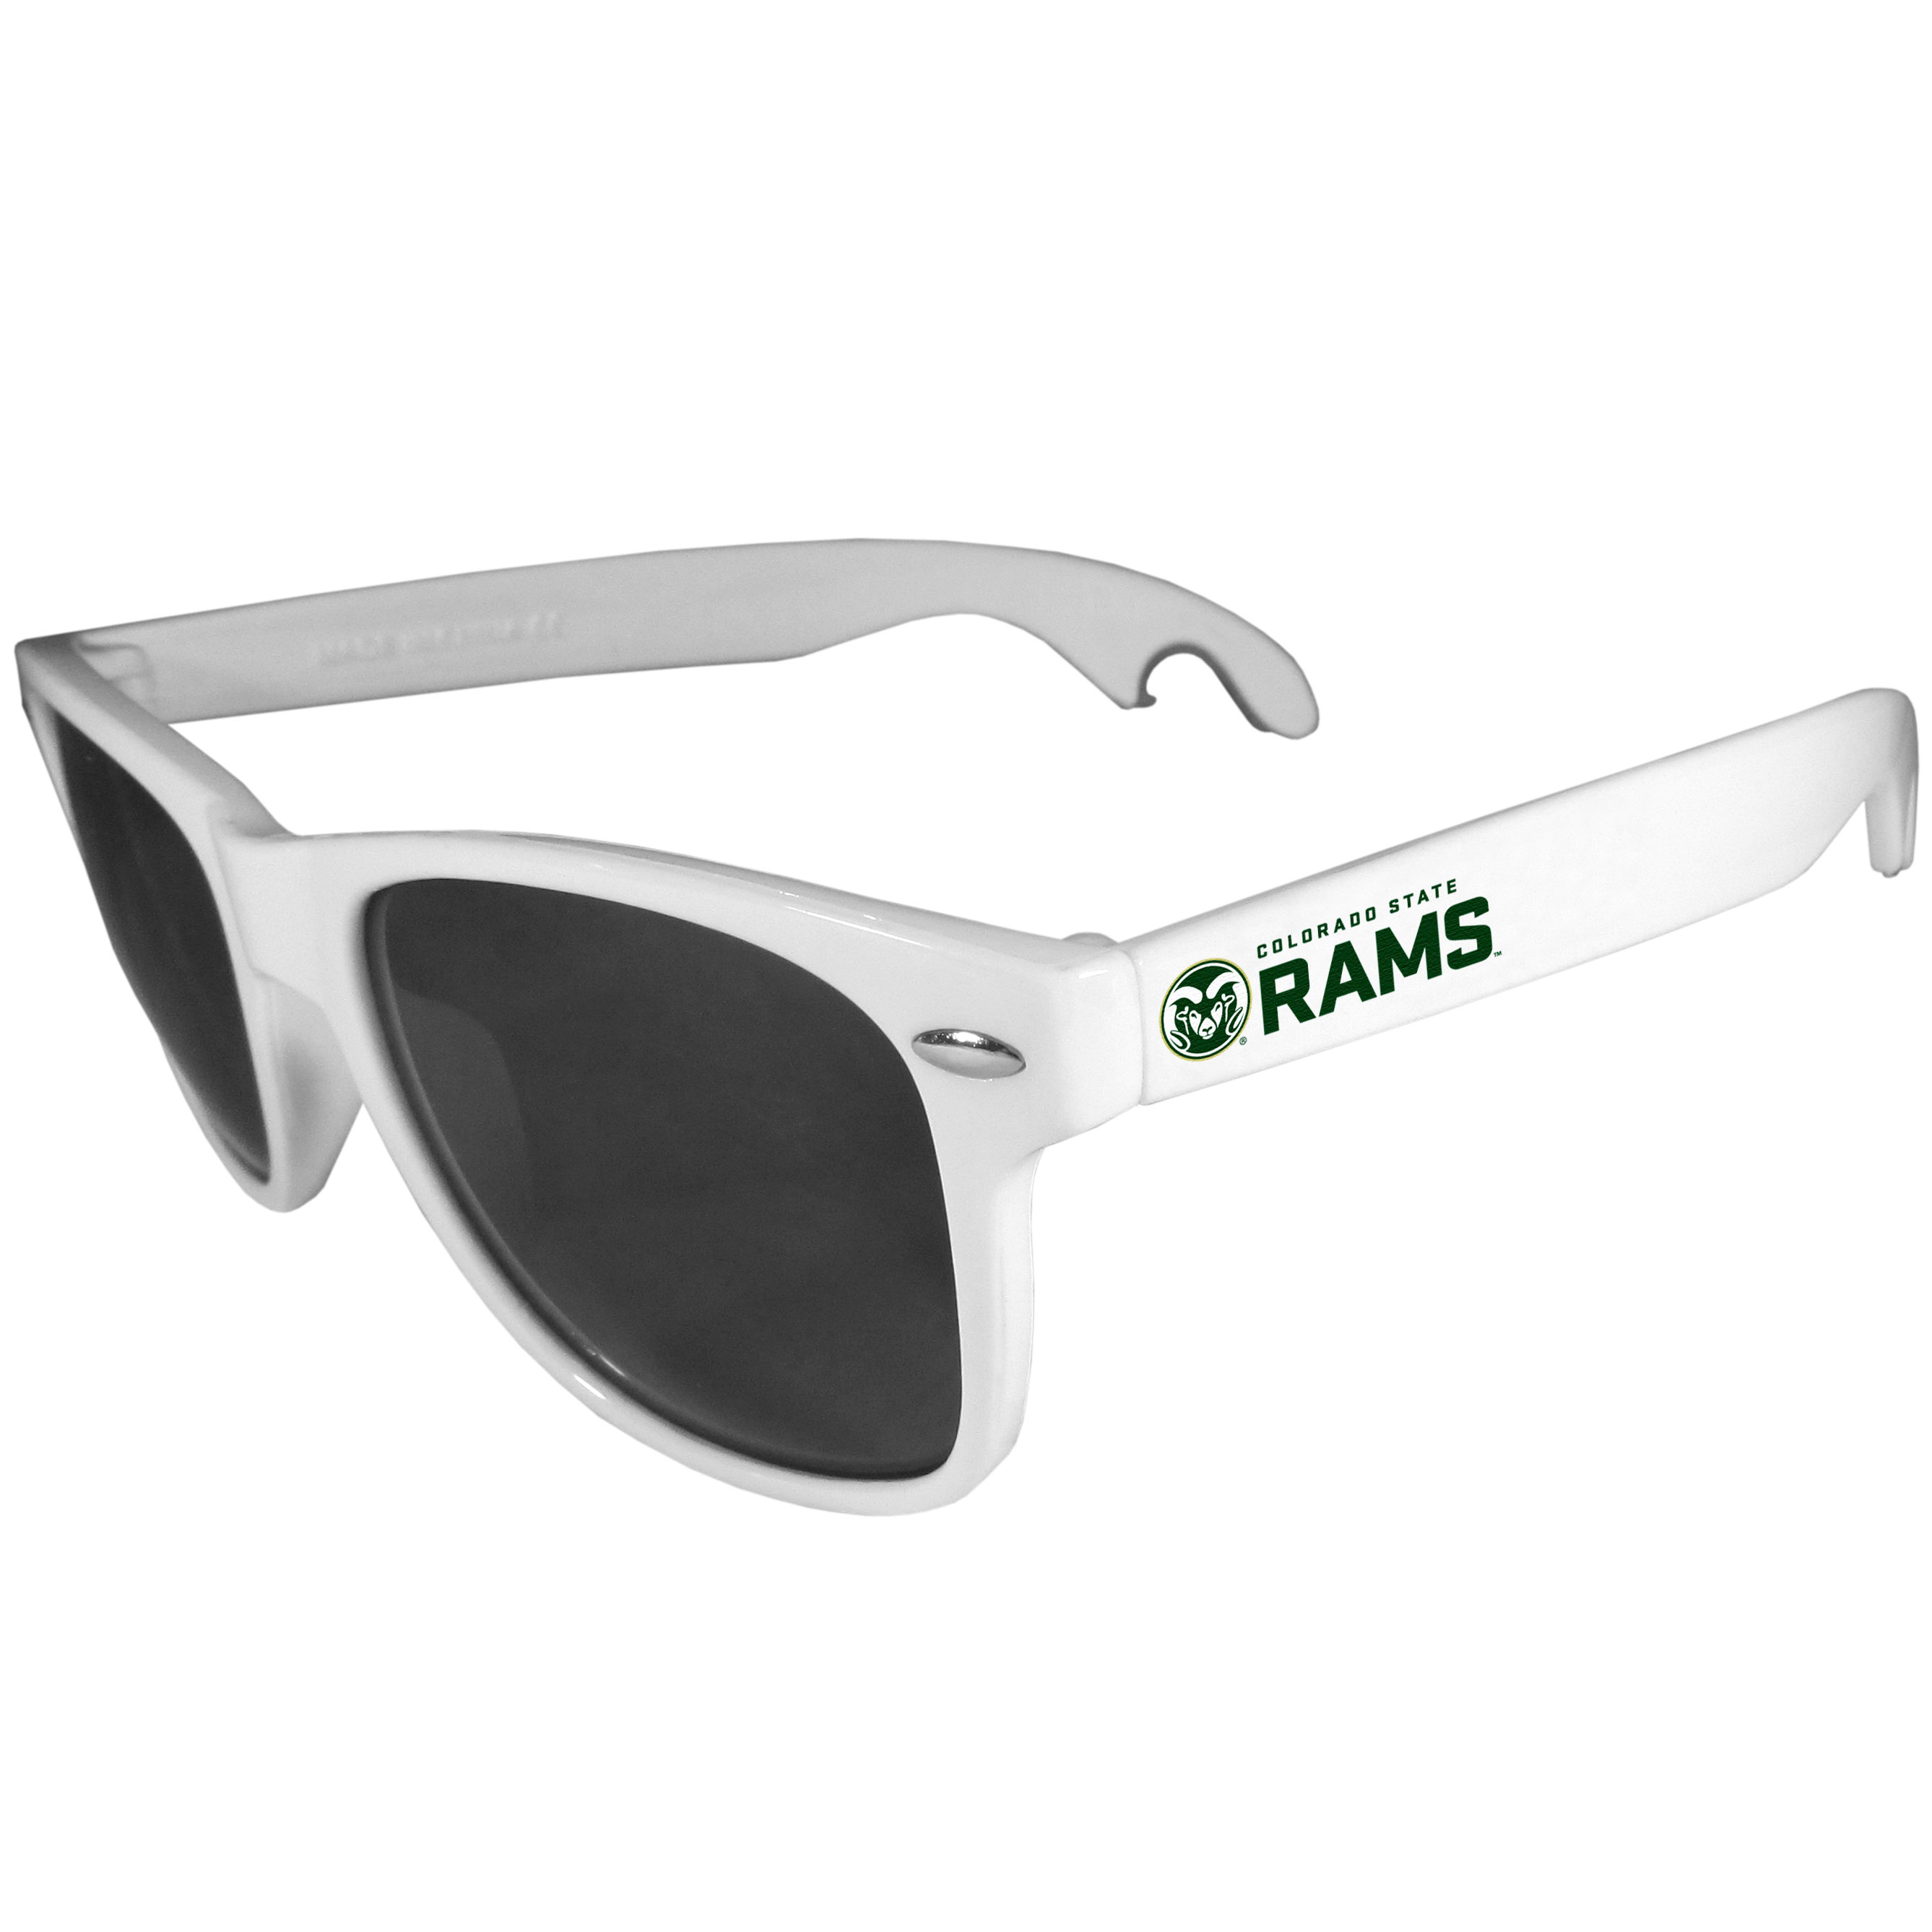 Colorado St. Rams Beachfarer Bottle Opener Sunglasses, White - Seriously, these sunglasses open bottles! Keep the party going with these amazing Colorado St. Rams bottle opener sunglasses. The stylish retro frames feature team designs on the arms and functional bottle openers on the end of the arms. Whether you are at the beach or having a backyard BBQ on game day, these shades will keep your eyes protected with 100% UVA/UVB protection and keep you hydrated with the handy bottle opener arms.